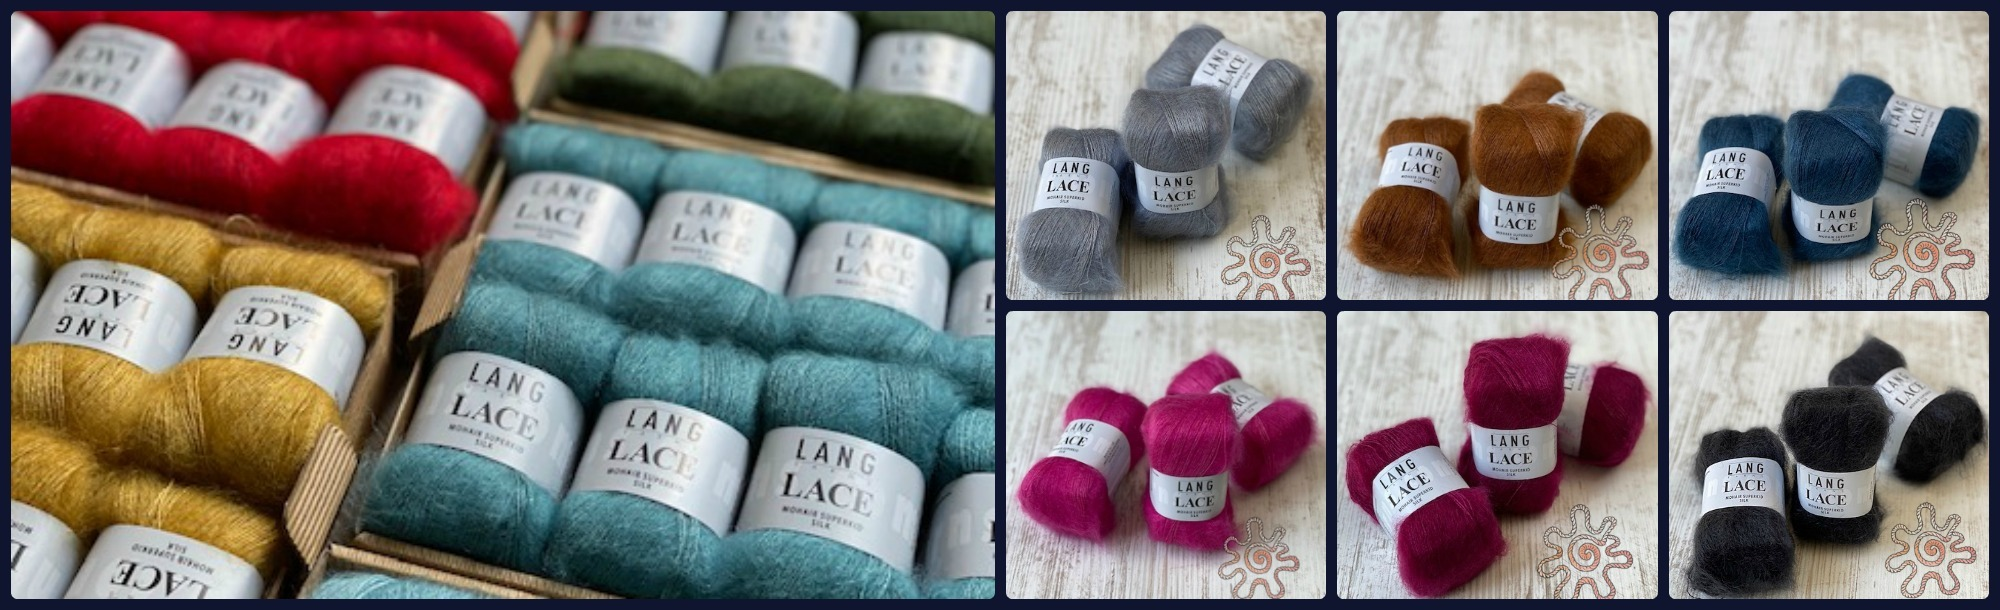 lang_lace_mohair